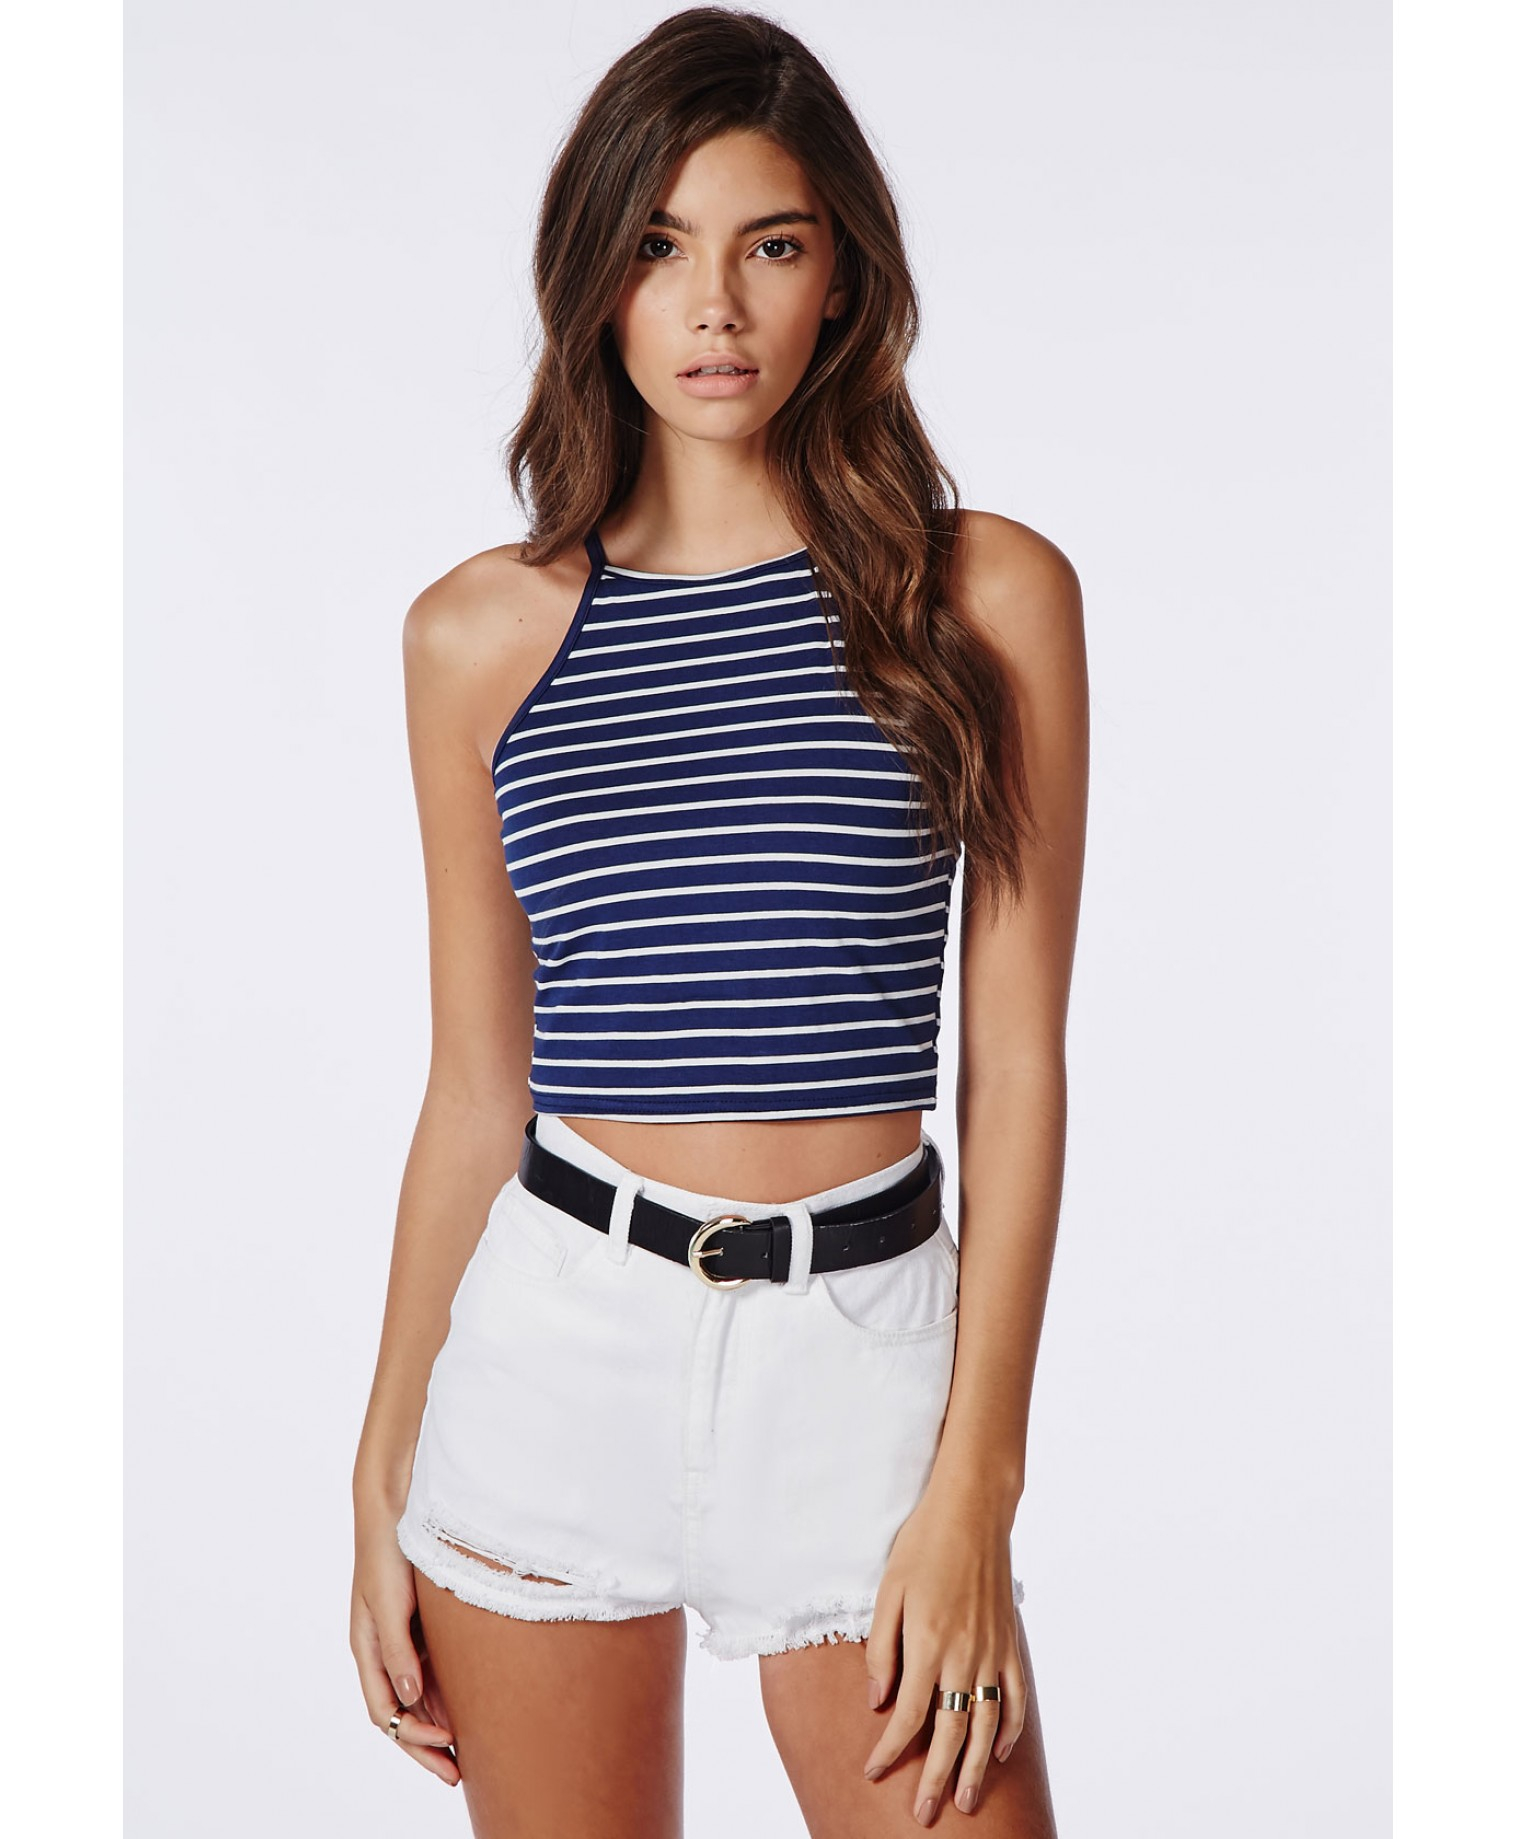 c268df0f522 592c7f0423e5b Lyst - Missguided Striped High Neck Crop Top Navy in Blue ...